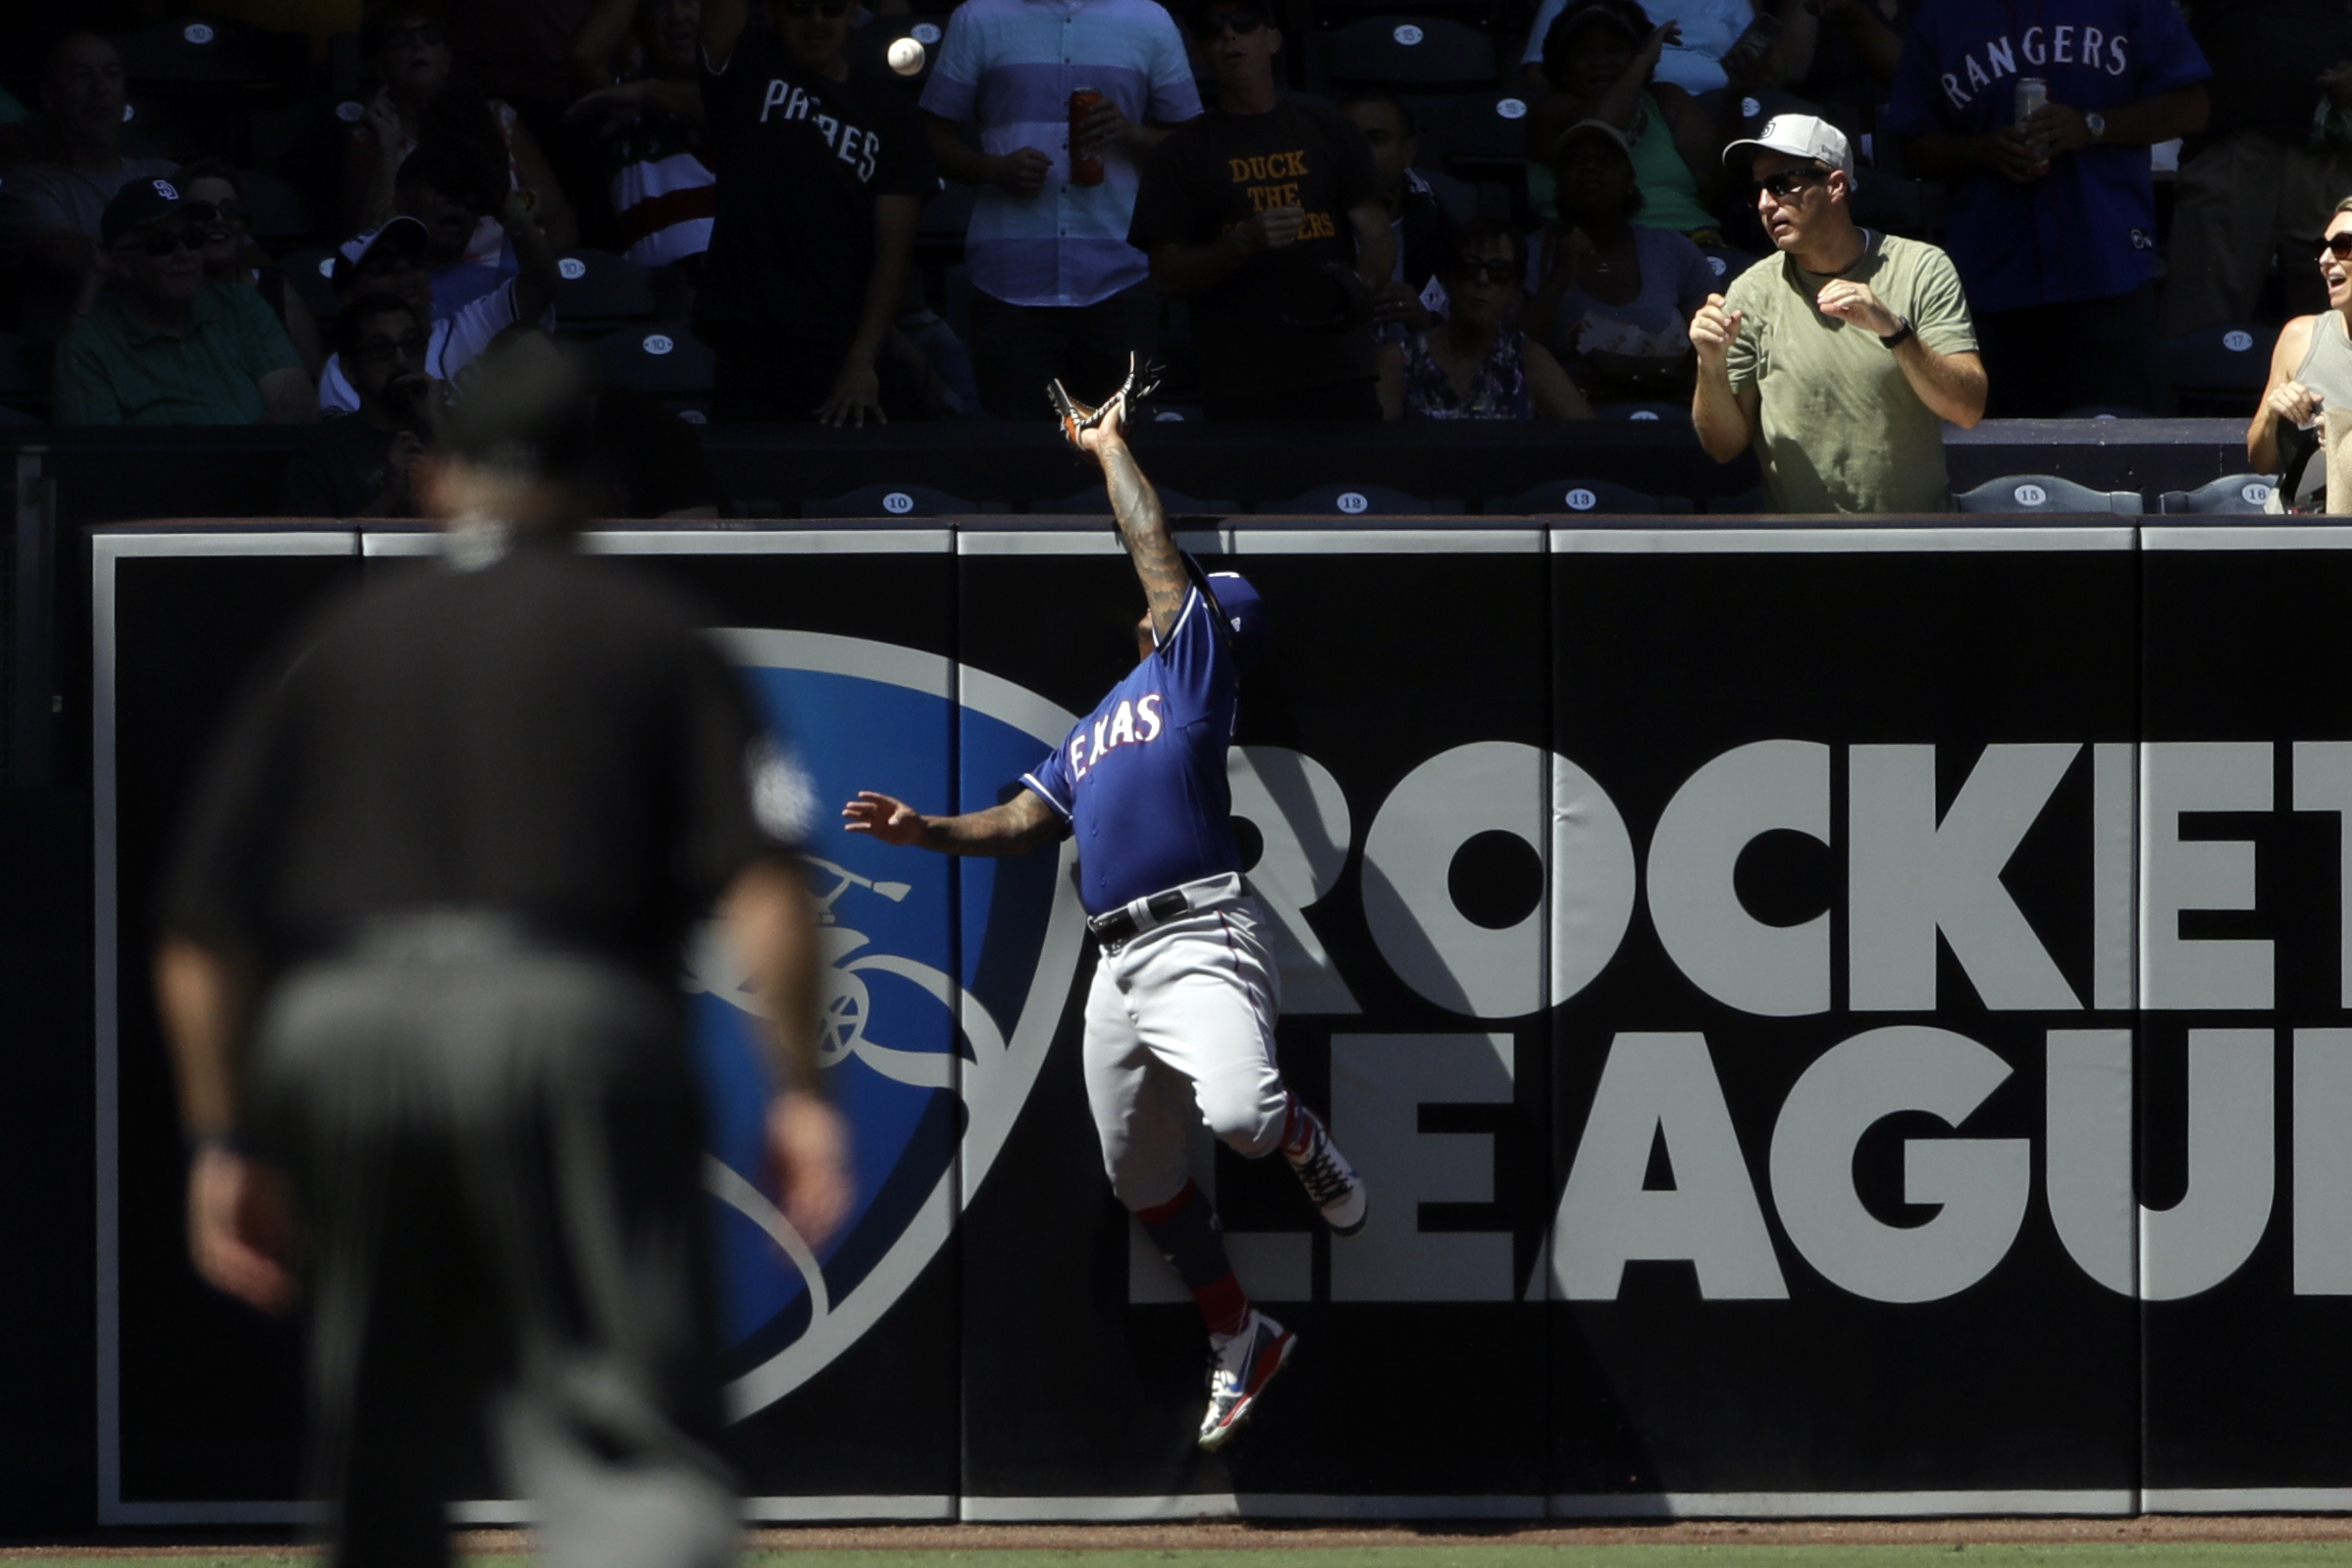 Mejia's slam lifts Padres to 7-3 win over Rangers